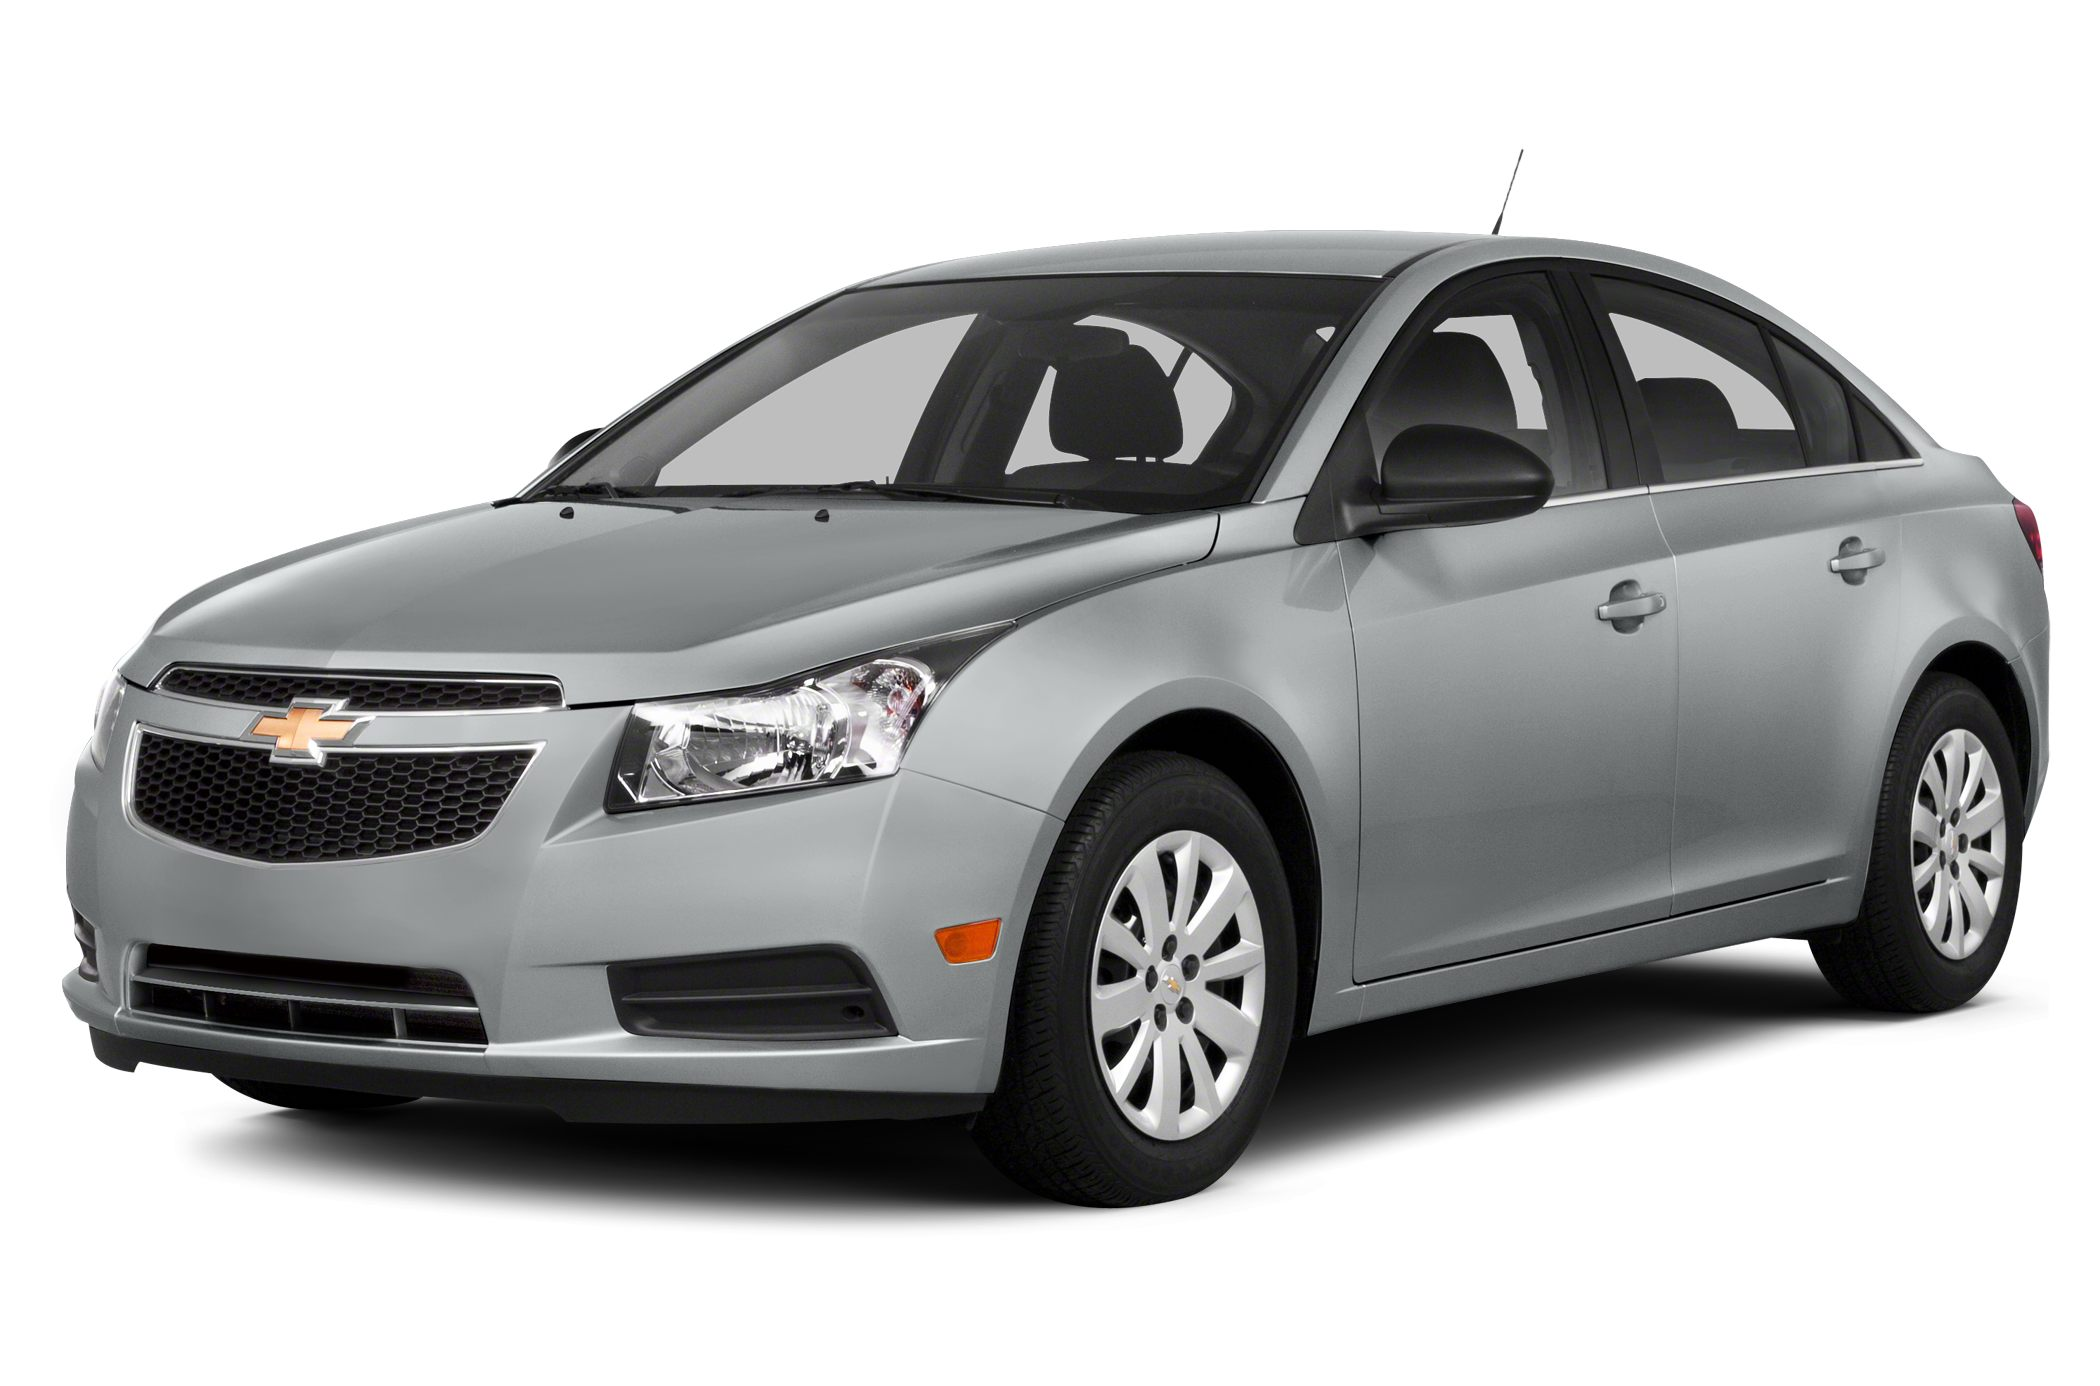 2014 Chevrolet Cruze LS Sedan for sale in Oneonta for $19,855 with 4 miles.